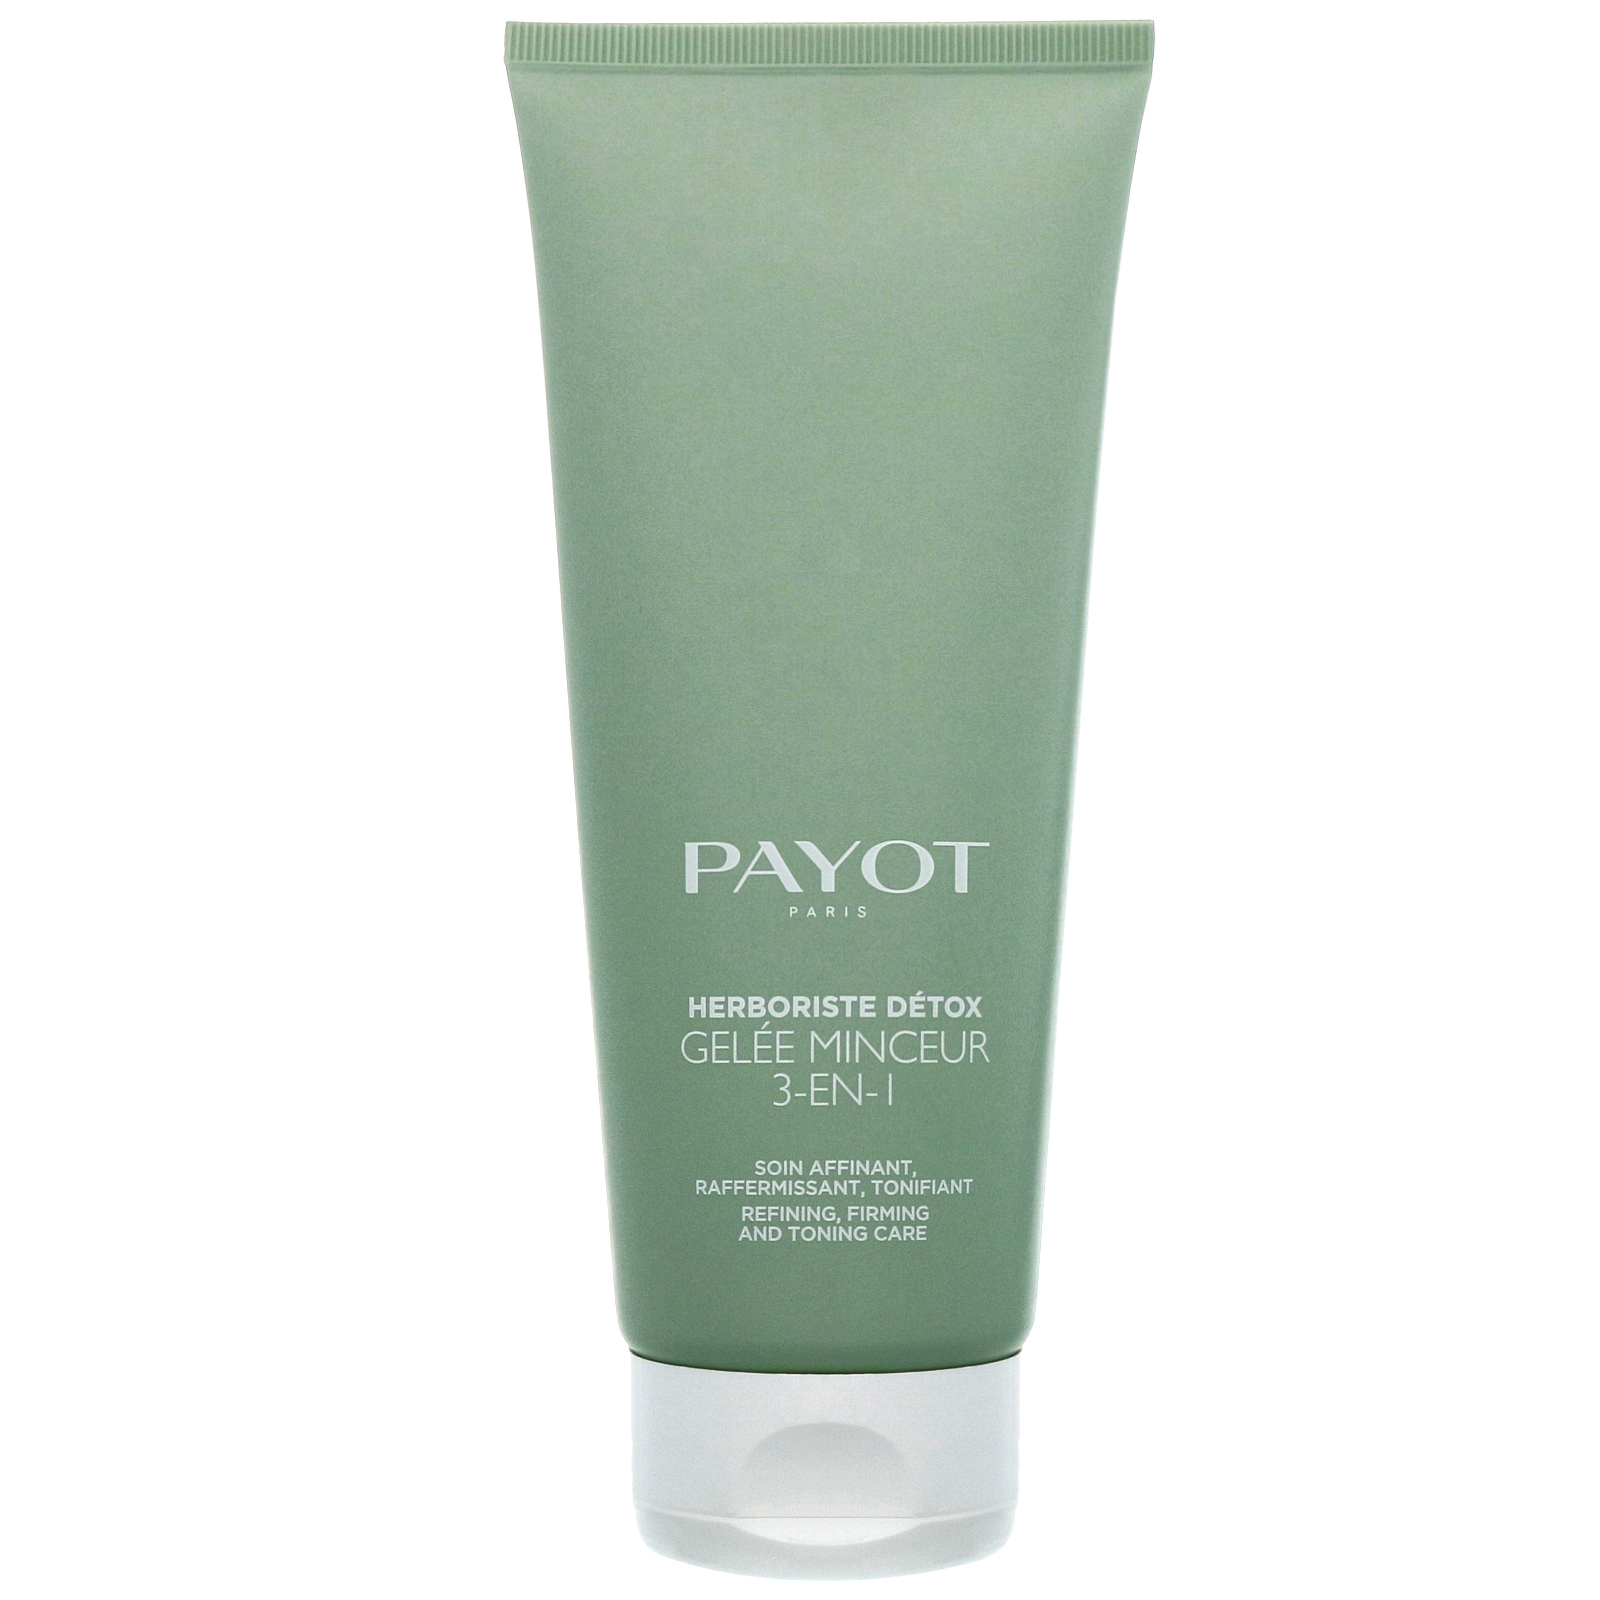 Payot Paris Herboriste Detox Gelée Minceur 3-EN-1 Refining, Firming and Toning Care 200ml